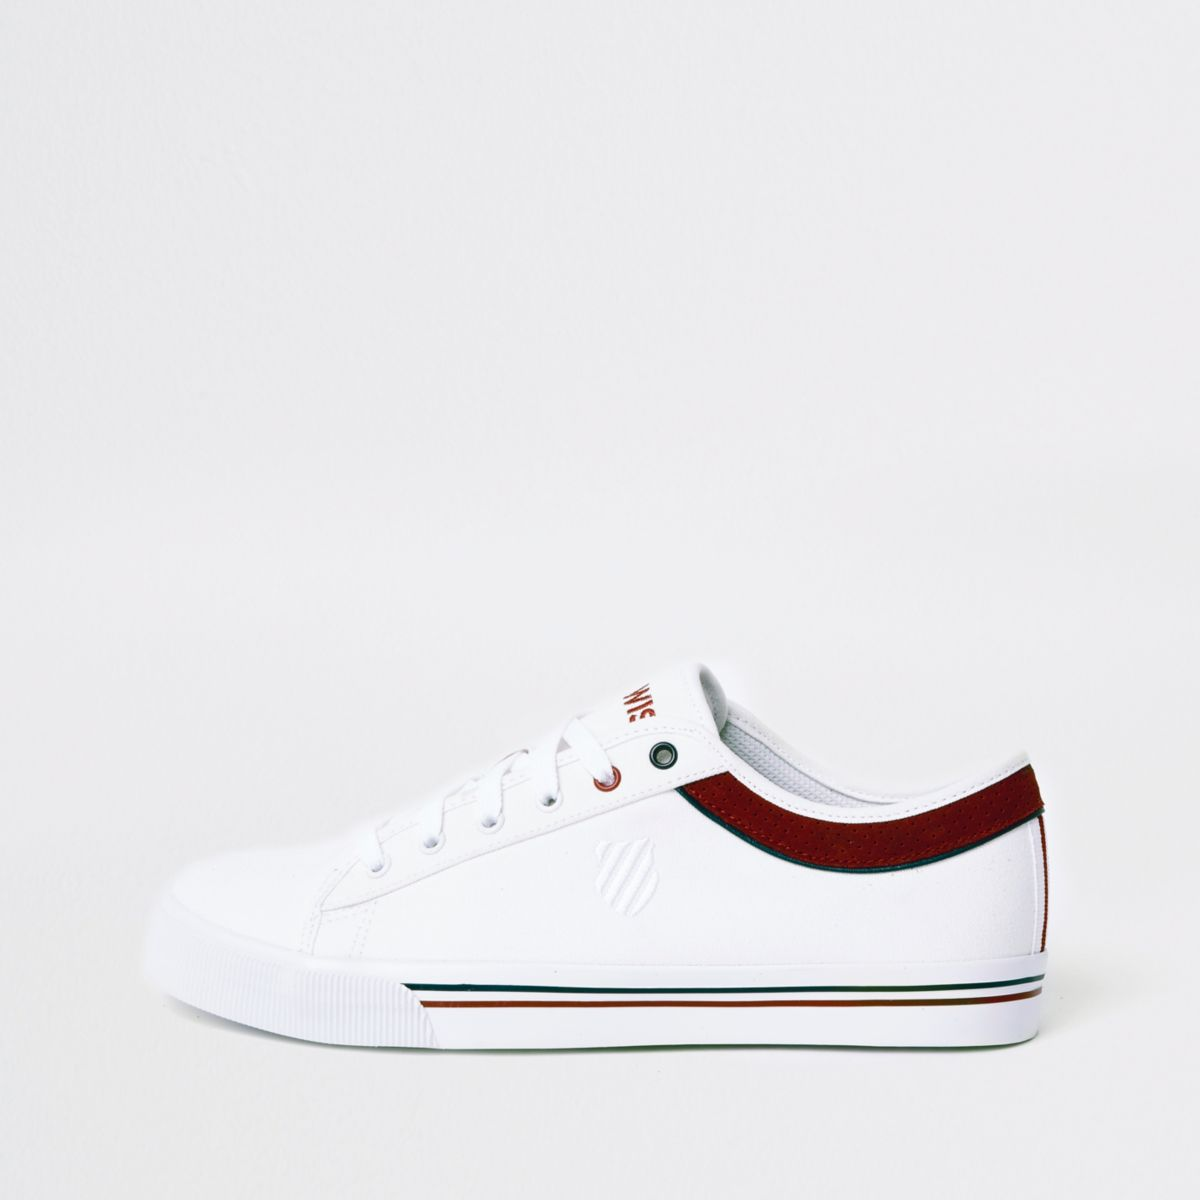 White K-Swiss low top canvas sneakers